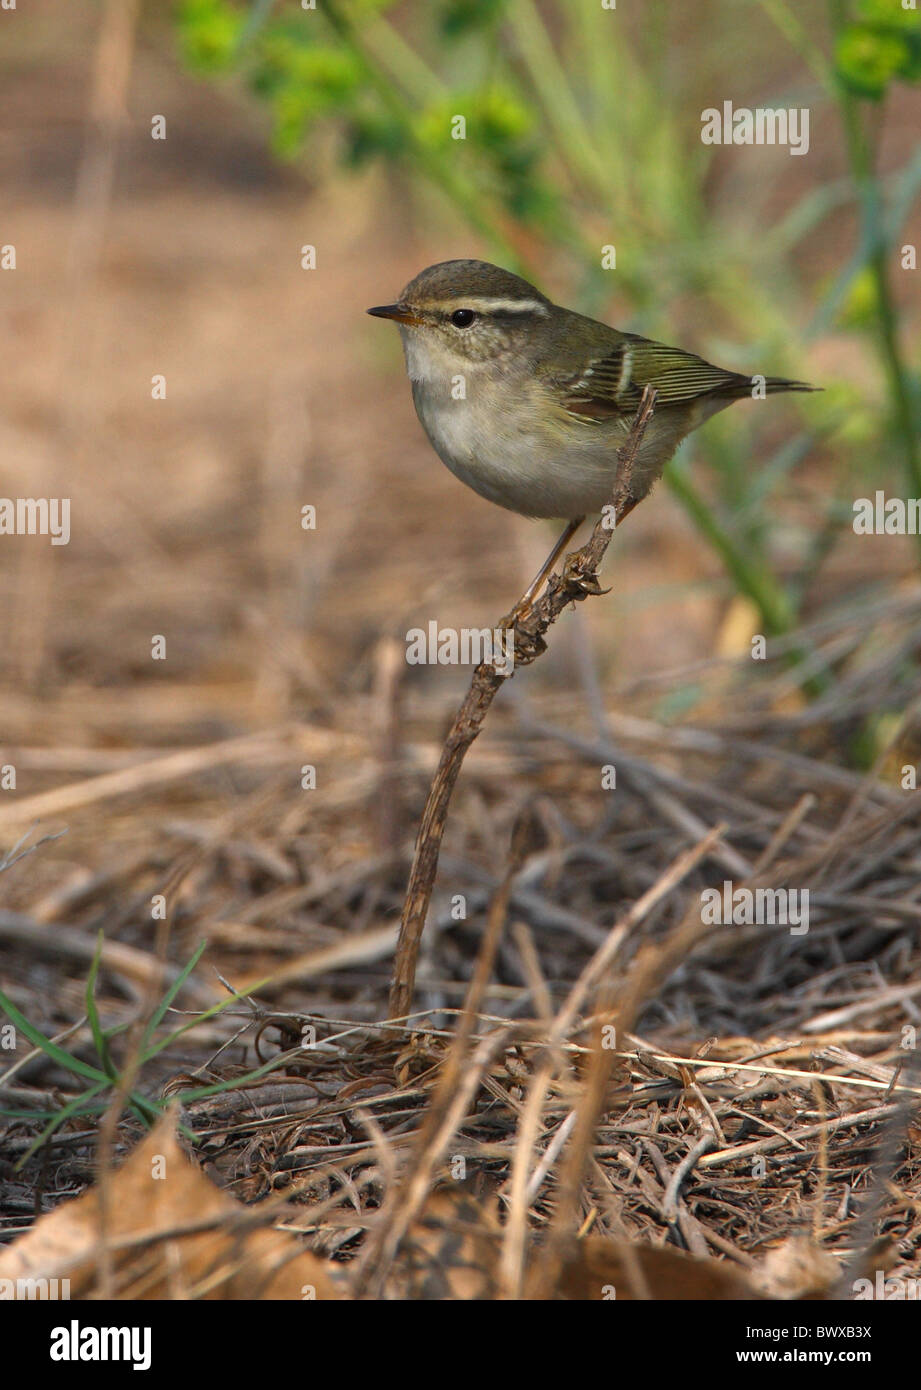 Yellow-browed Warbler (Phylloscopus inornatus) adult, perched on stick, Hebei, China, may Stock Photo